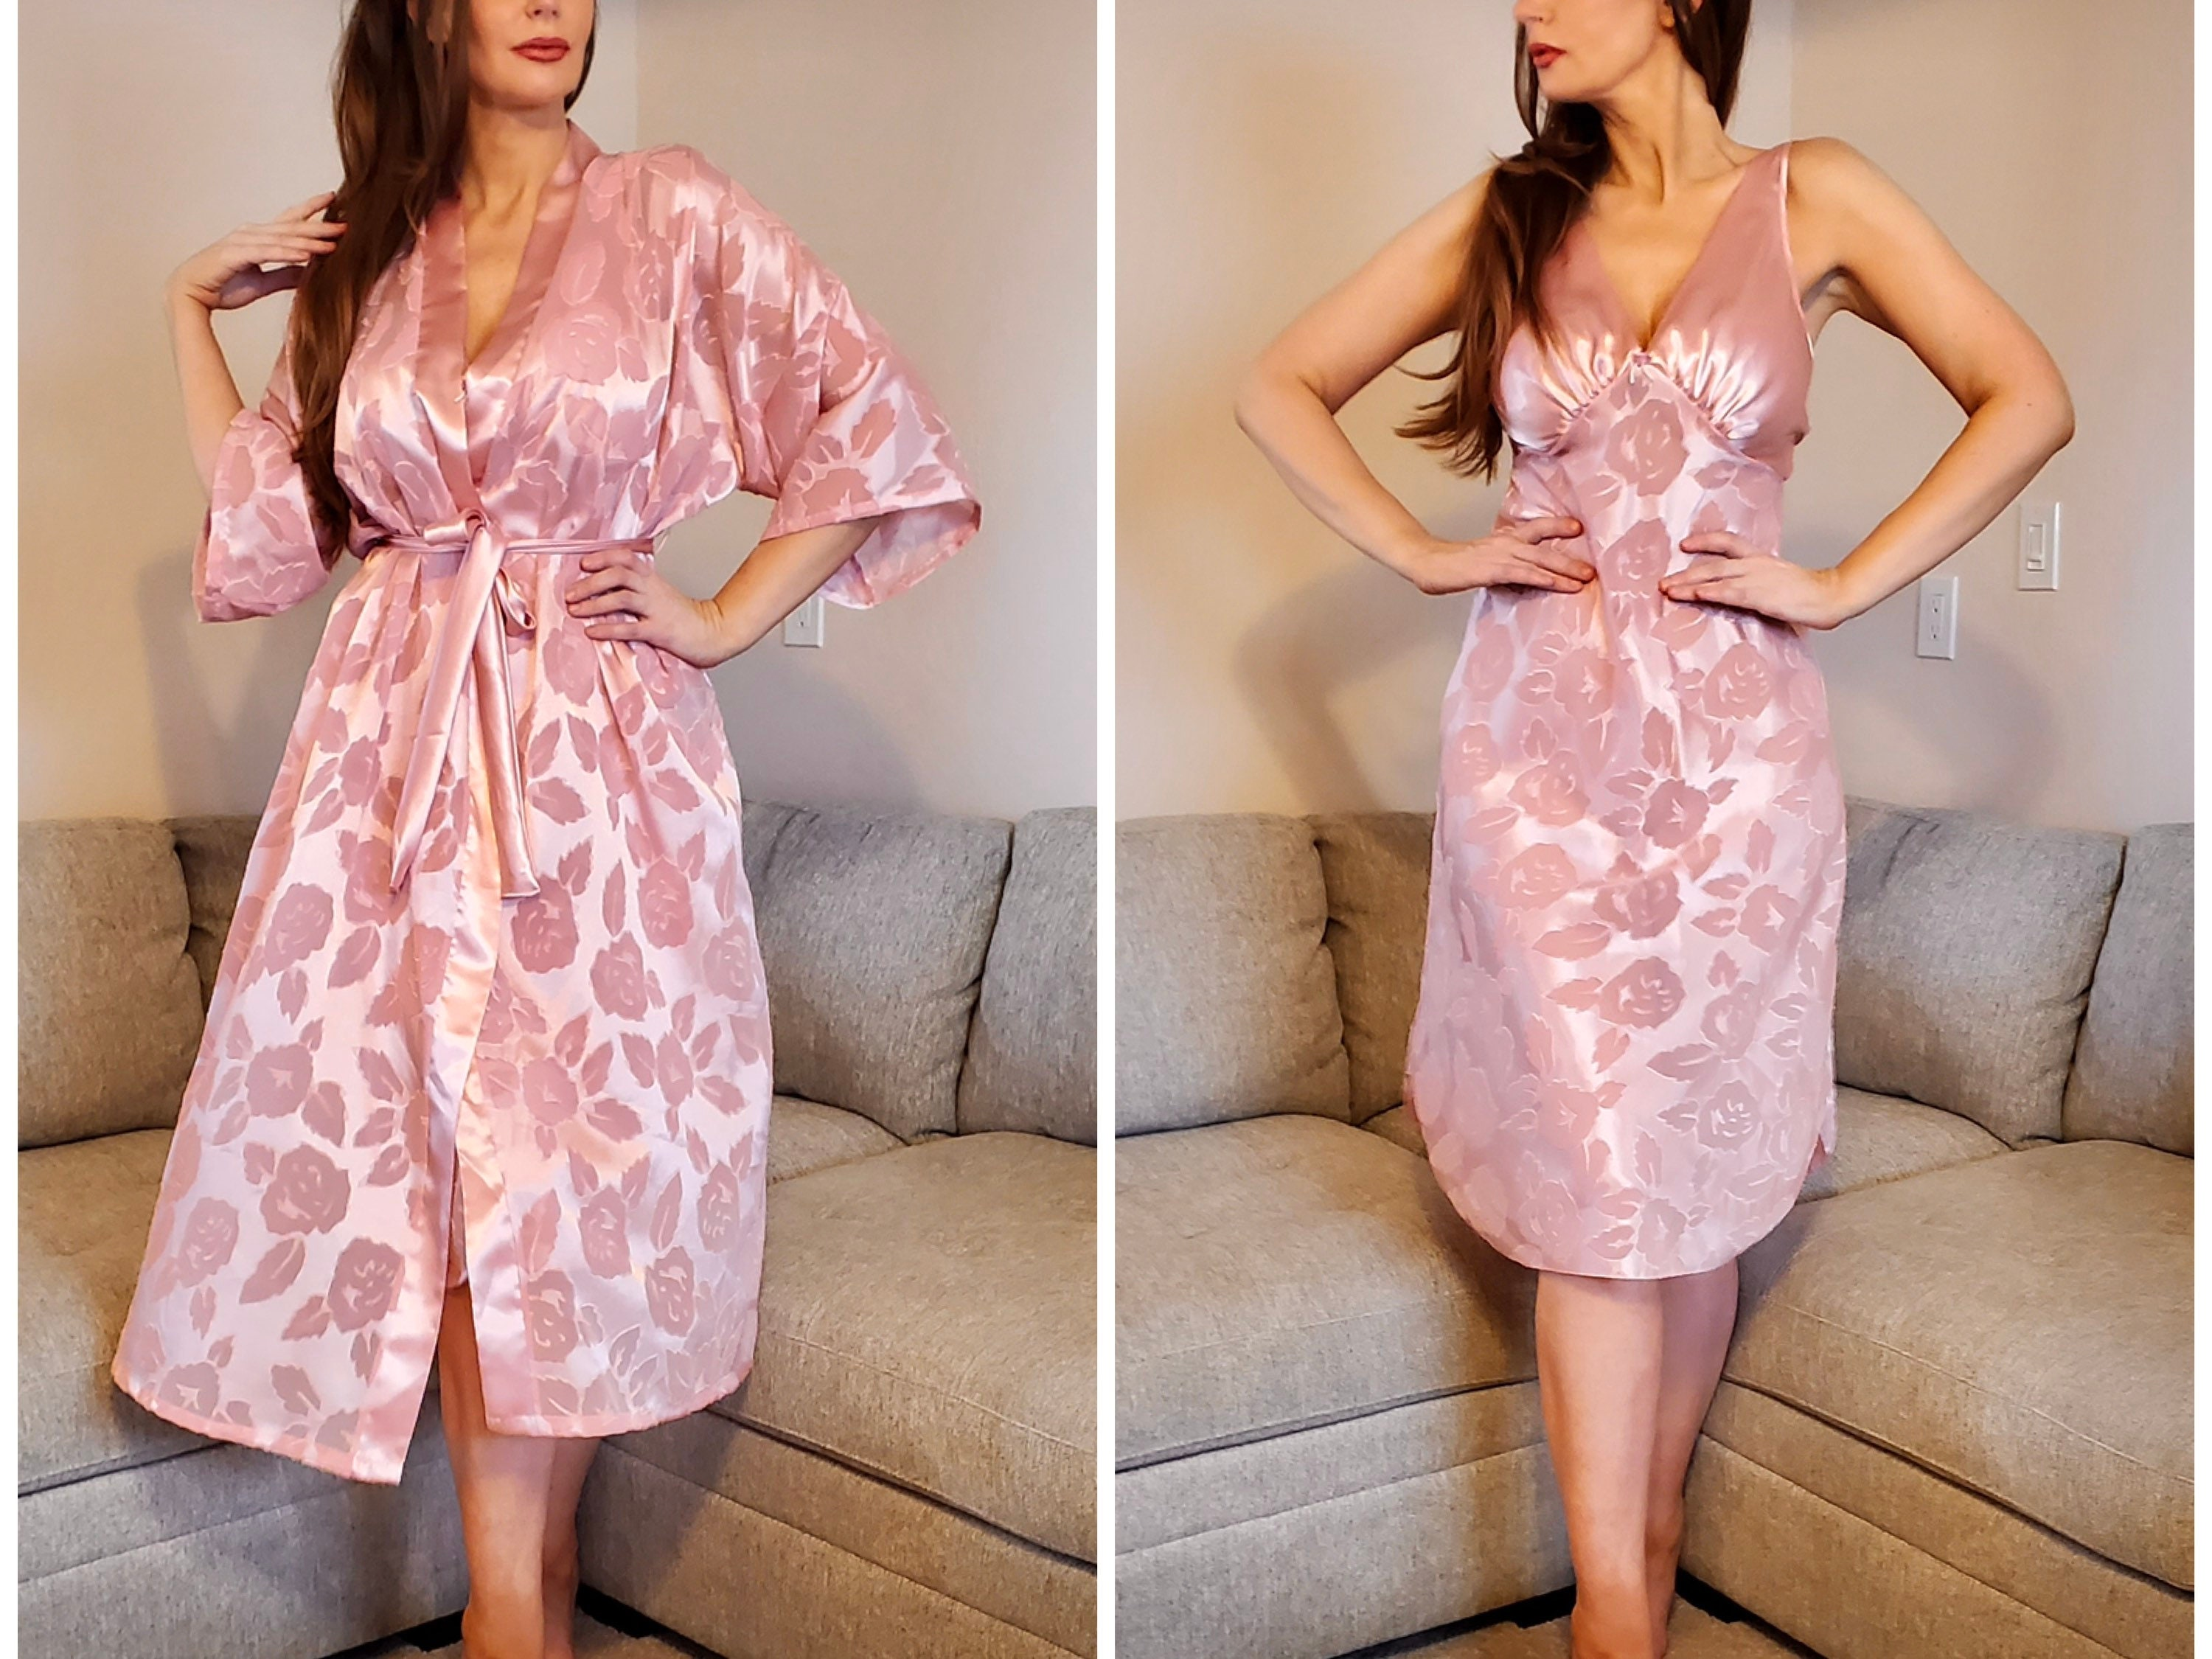 80s Dresses   Casual to Party Dresses Vintage 1980S Nightgown  Robe Set By Lucie Ann Ii Empire Waisted Long Sheer Pink Floral Jacquard Satin, ML, 38, Made in Usa $0.00 AT vintagedancer.com